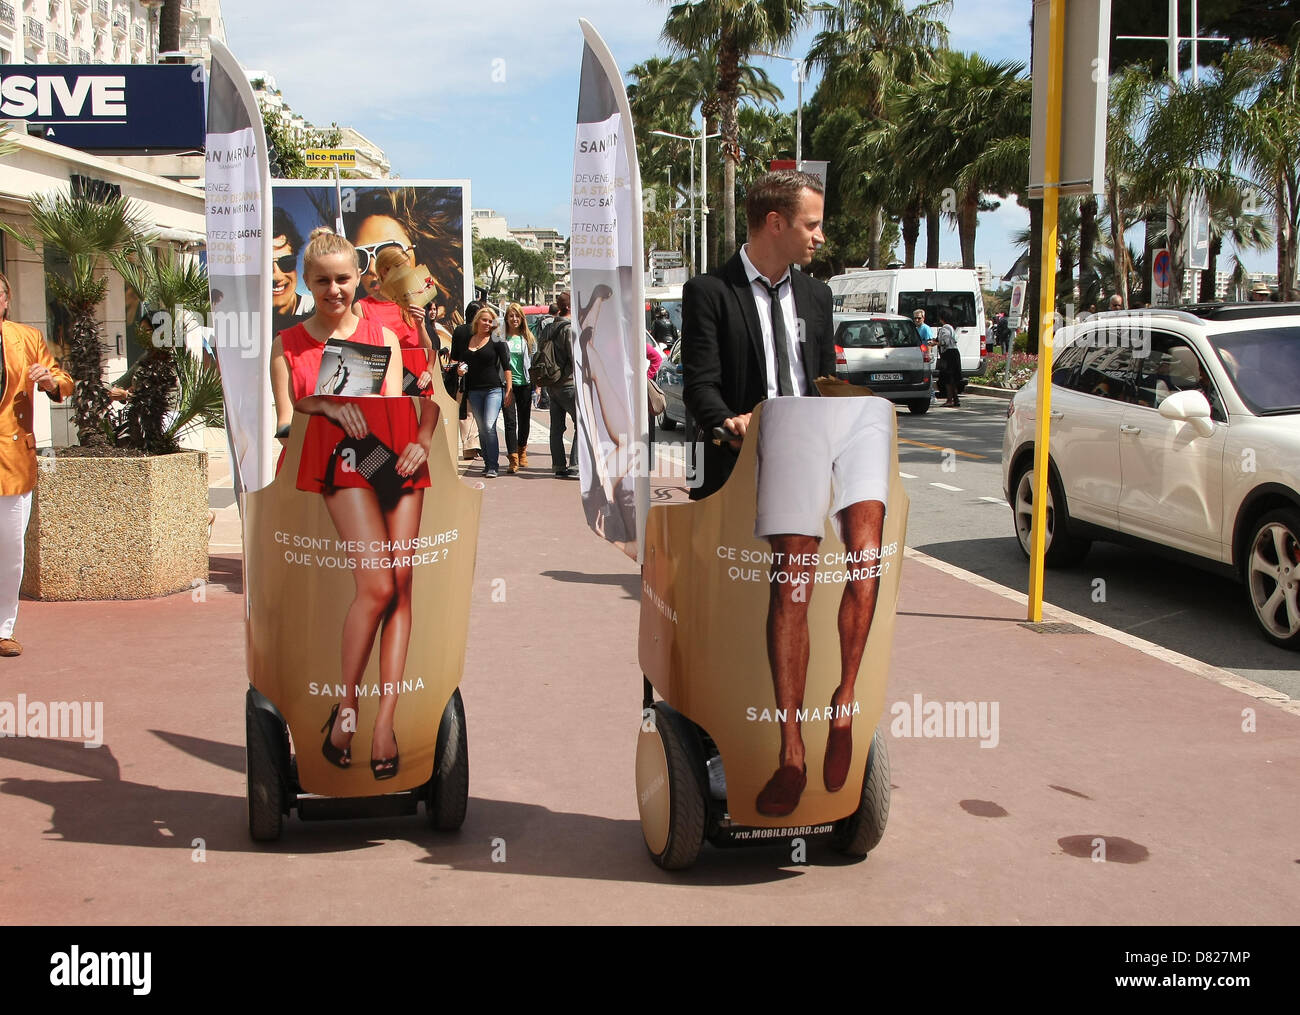 PROMOTIONAL COUPLE ON A SEGWAY MAGNUM. PHOTOCALL. CANNES FILM FESTIVAL 2013 CANNES  FRANCE 17 May 2013 - Stock Image